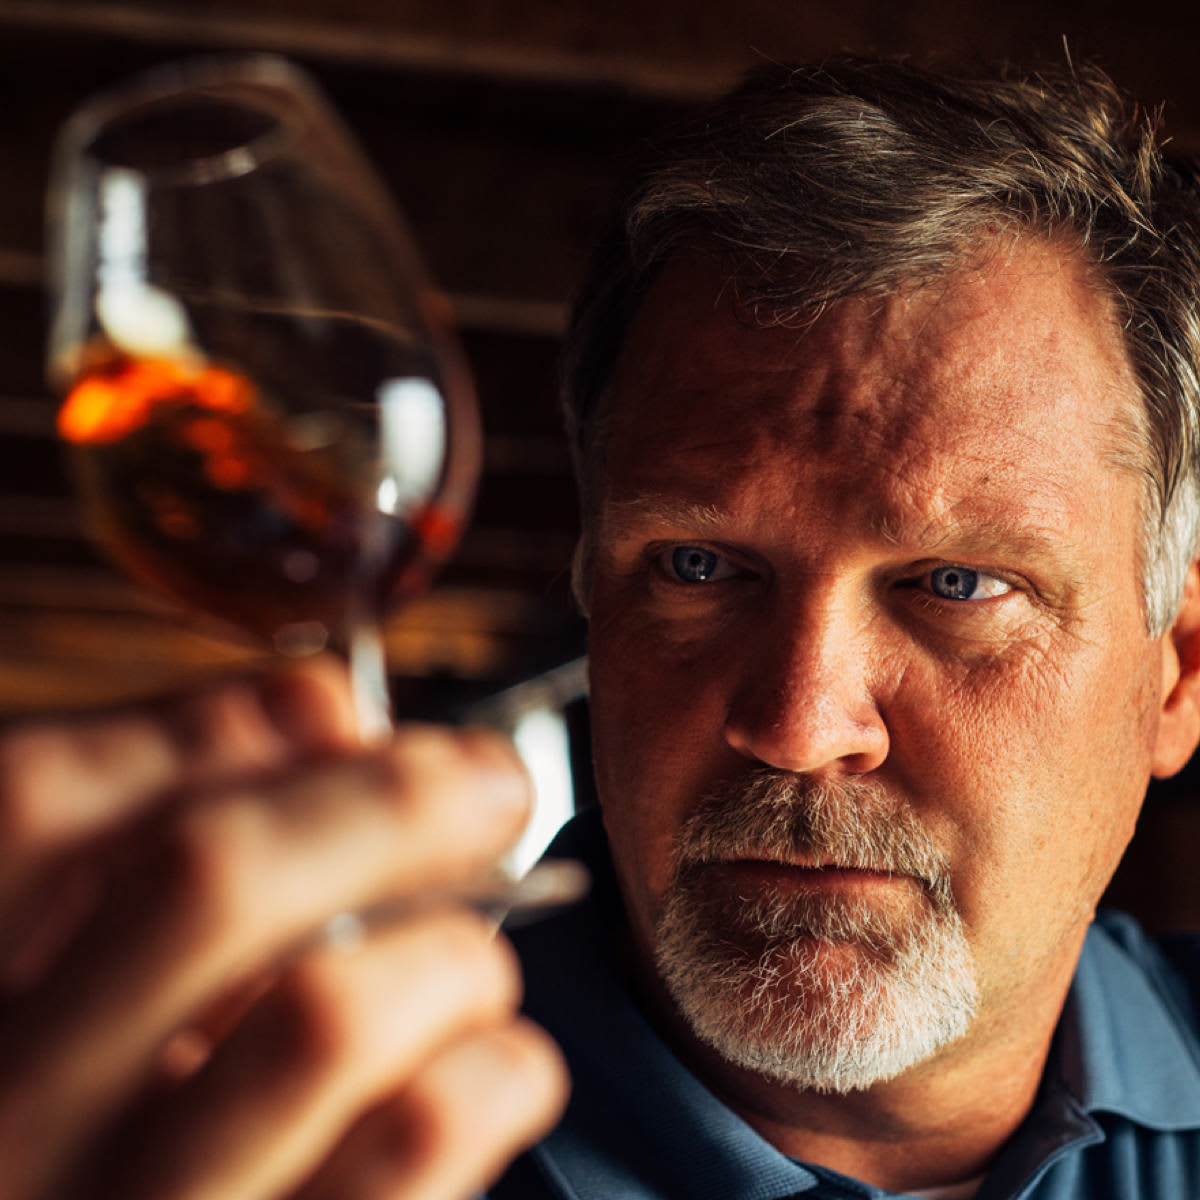 Jack Daniel's – Crafting whiskey for over 150 years